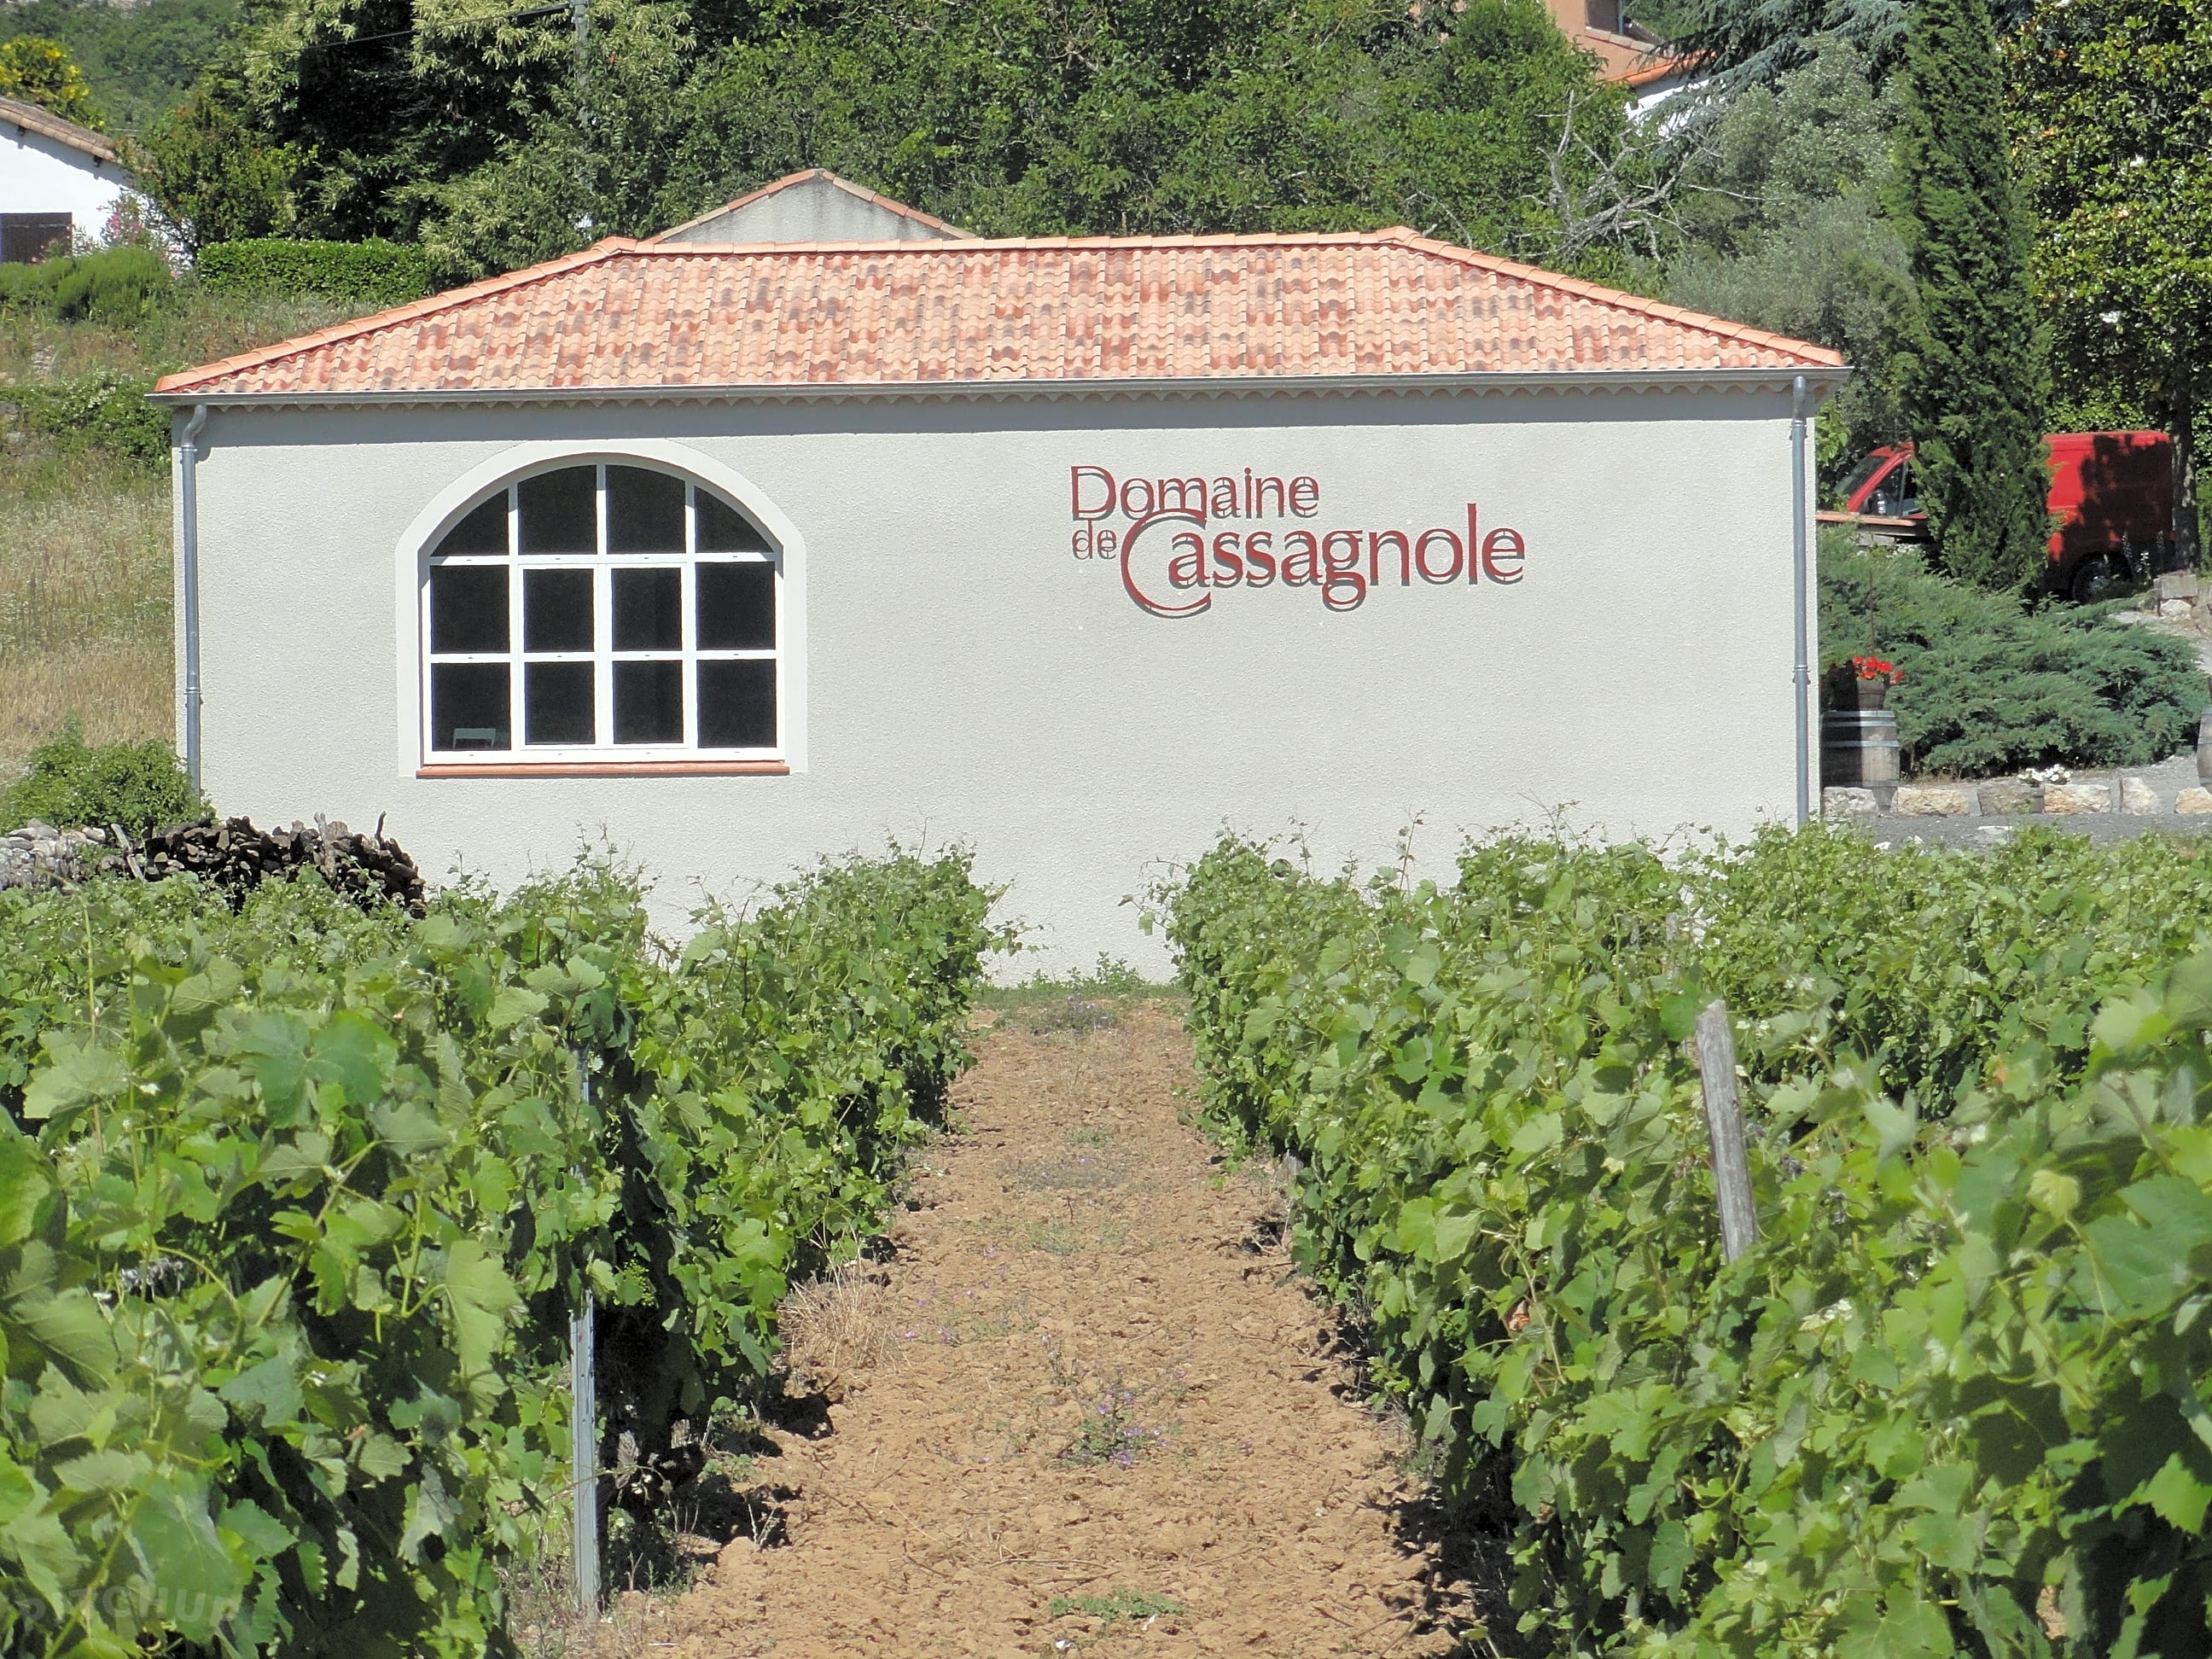 Situated in the grounds of the Domaine de Cassagnole vineyard